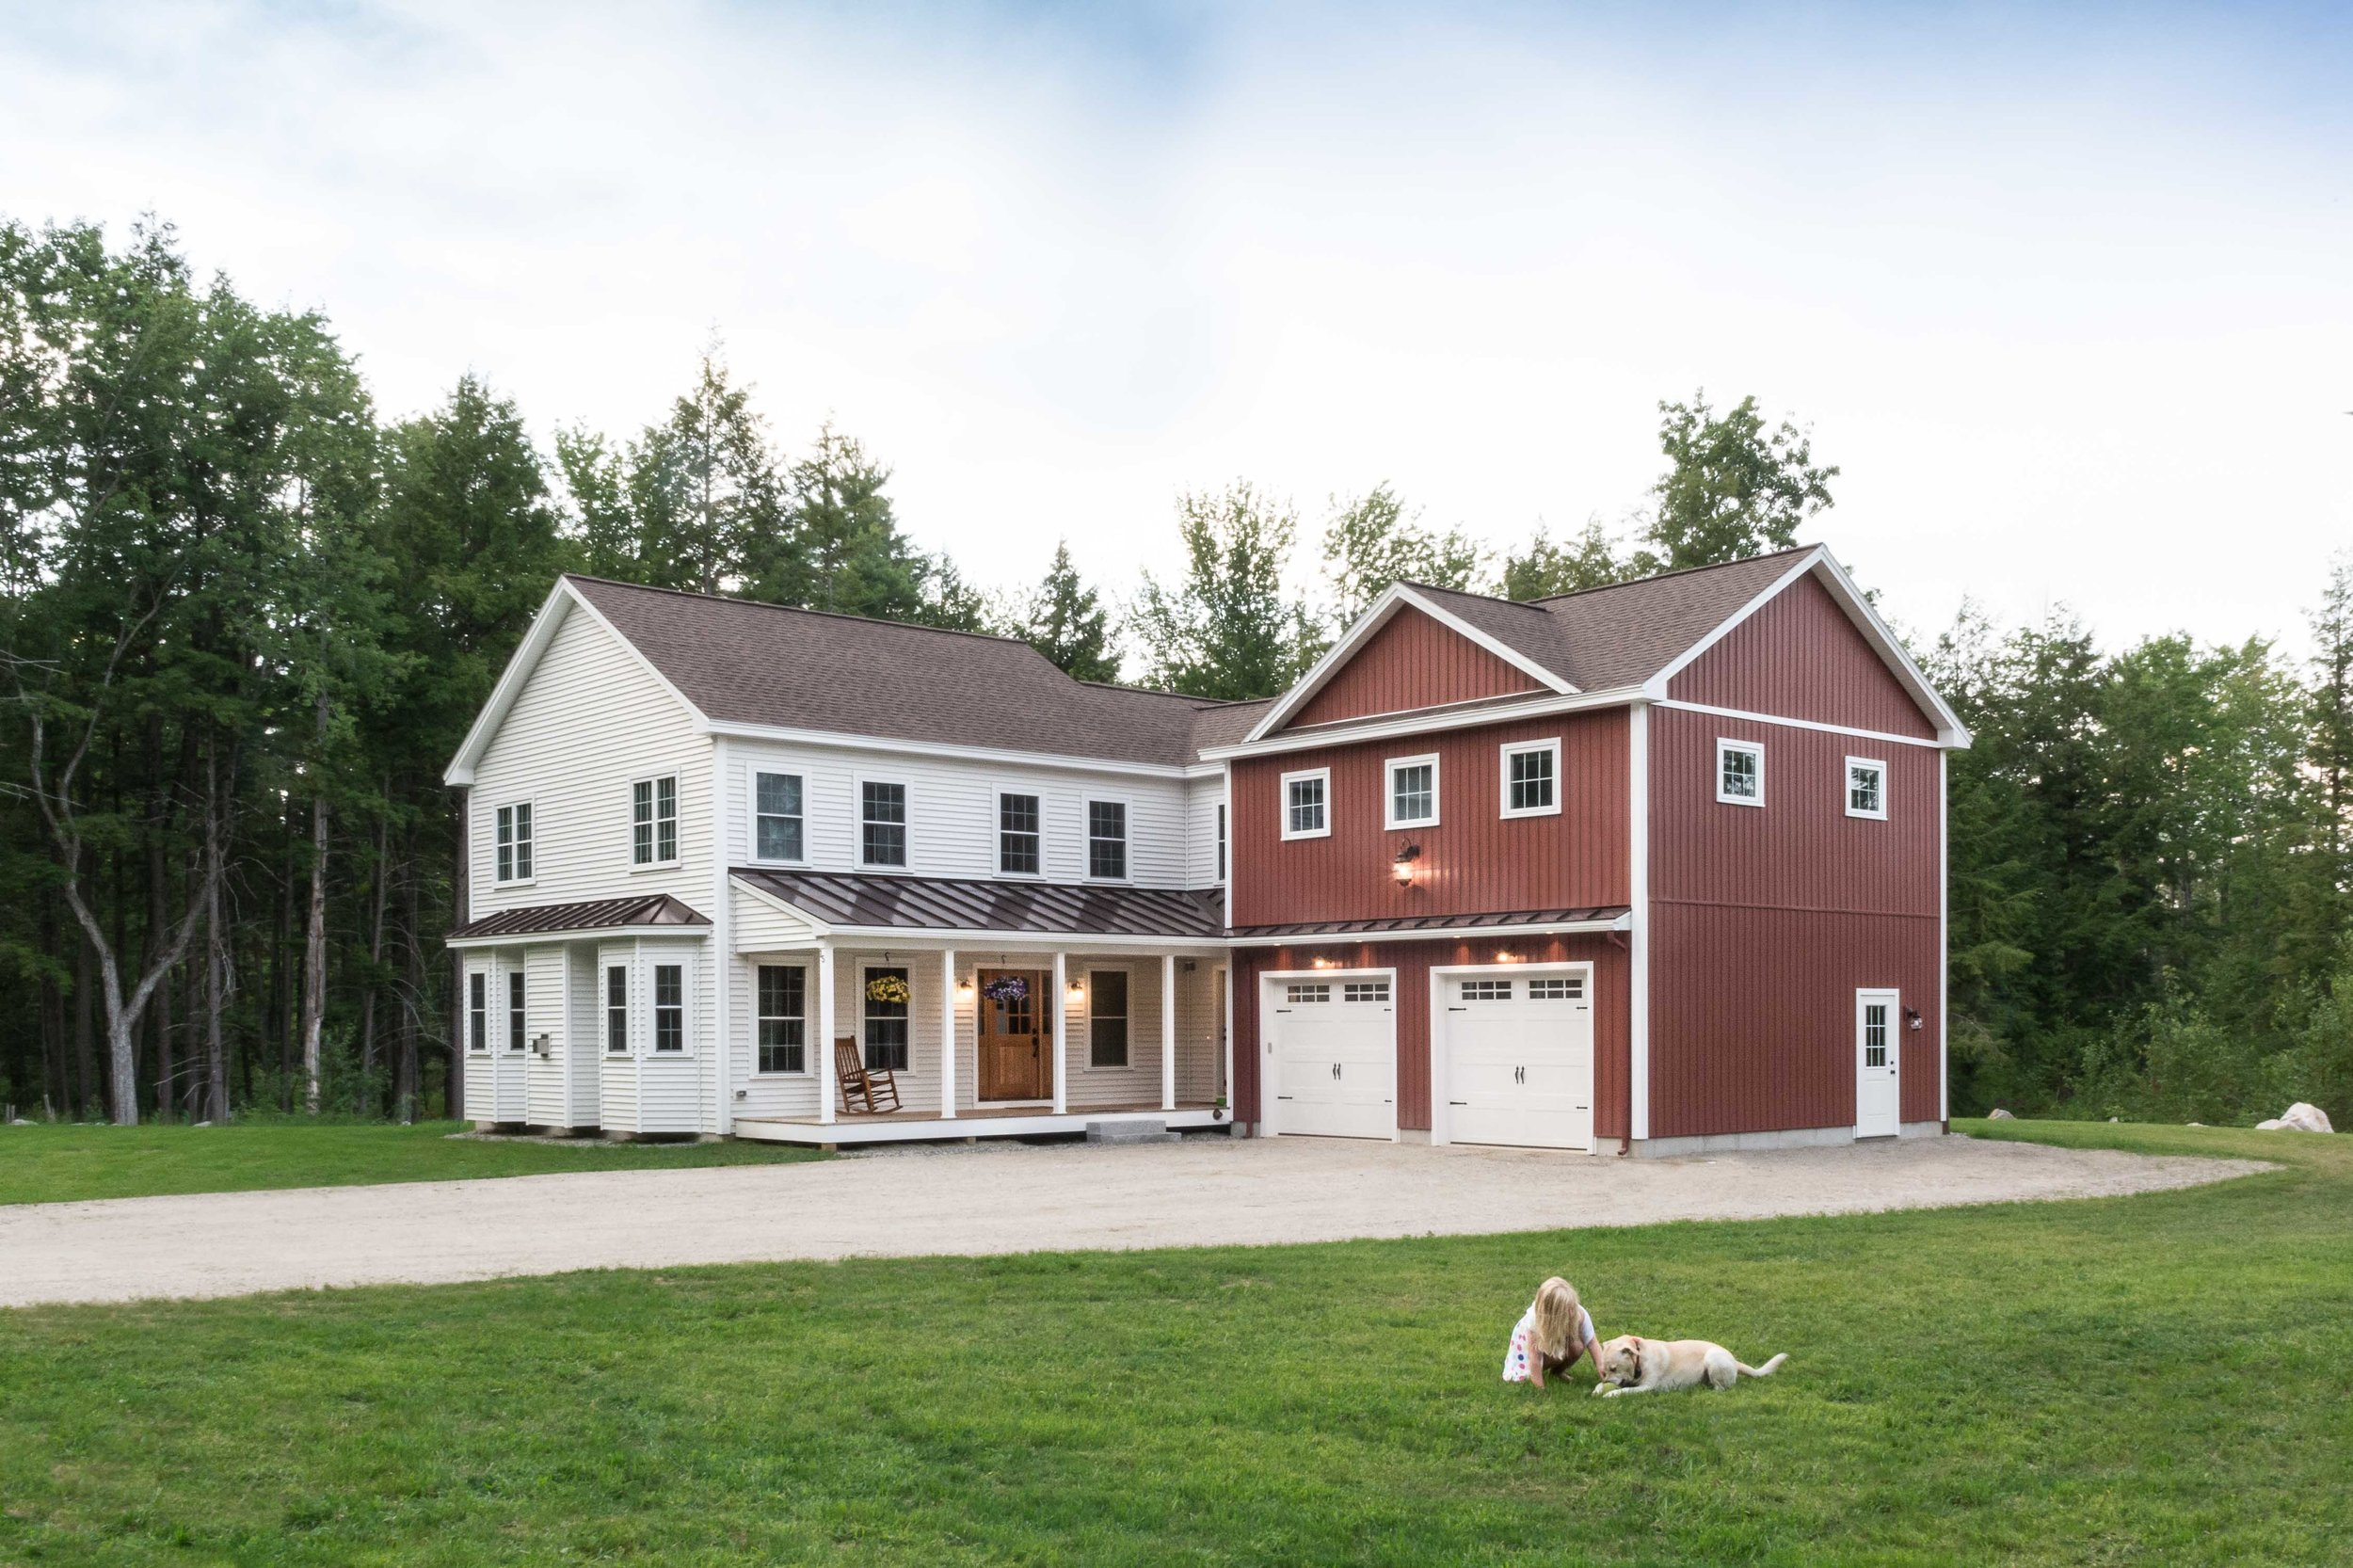 The Granite Ridge Farmhouse: A New Home Full Of Timeless Character